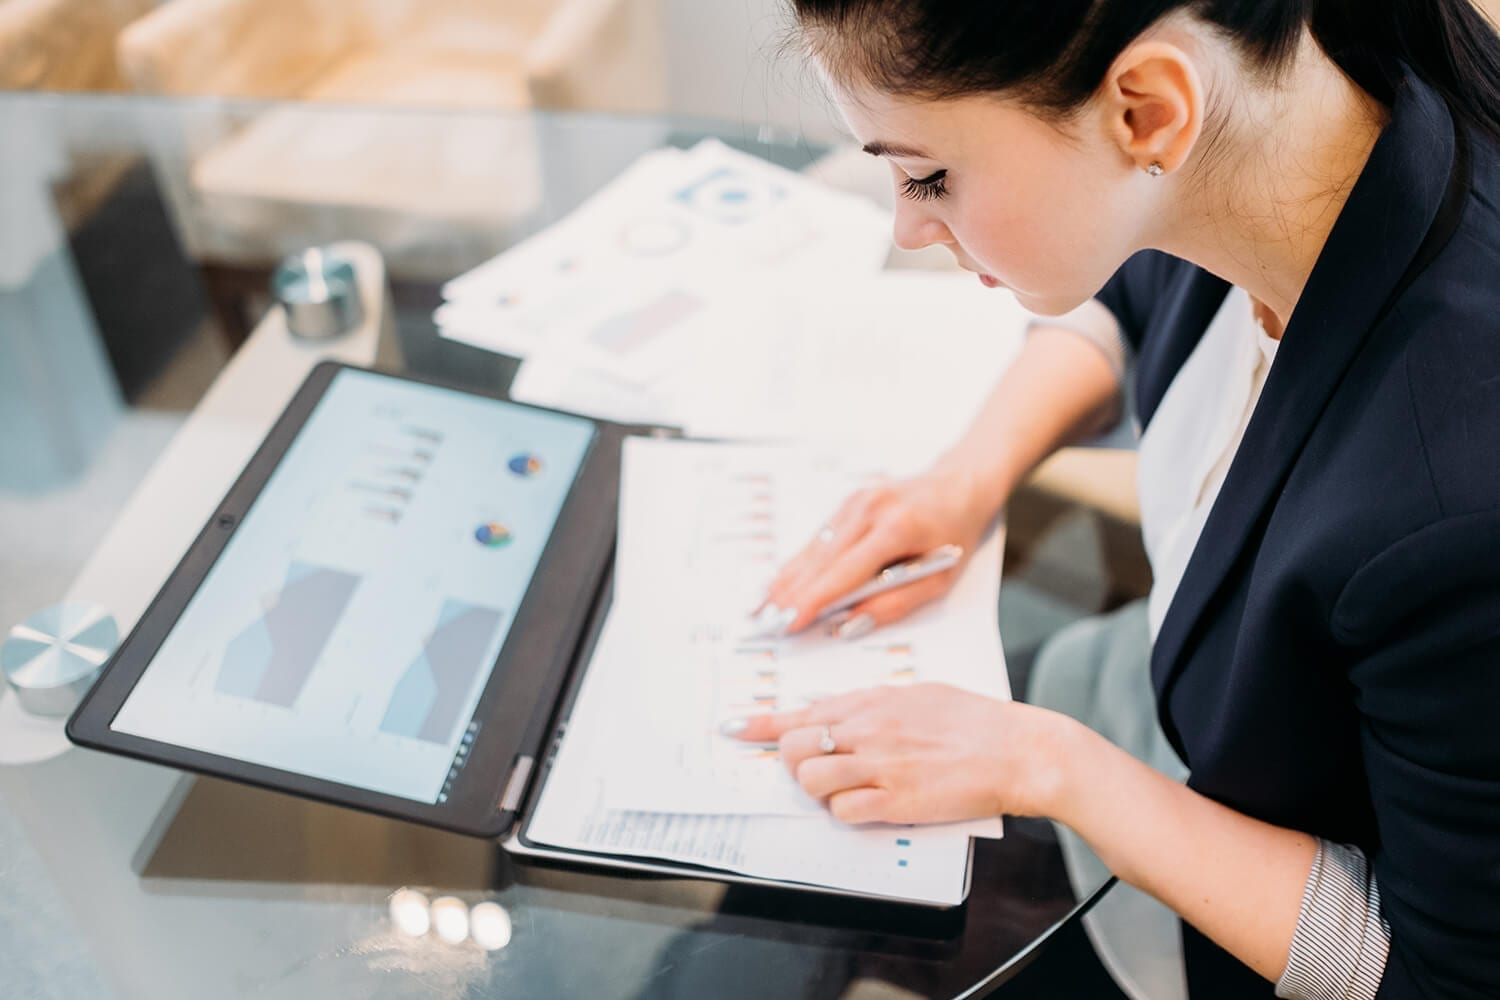 Woman working on documents in detail